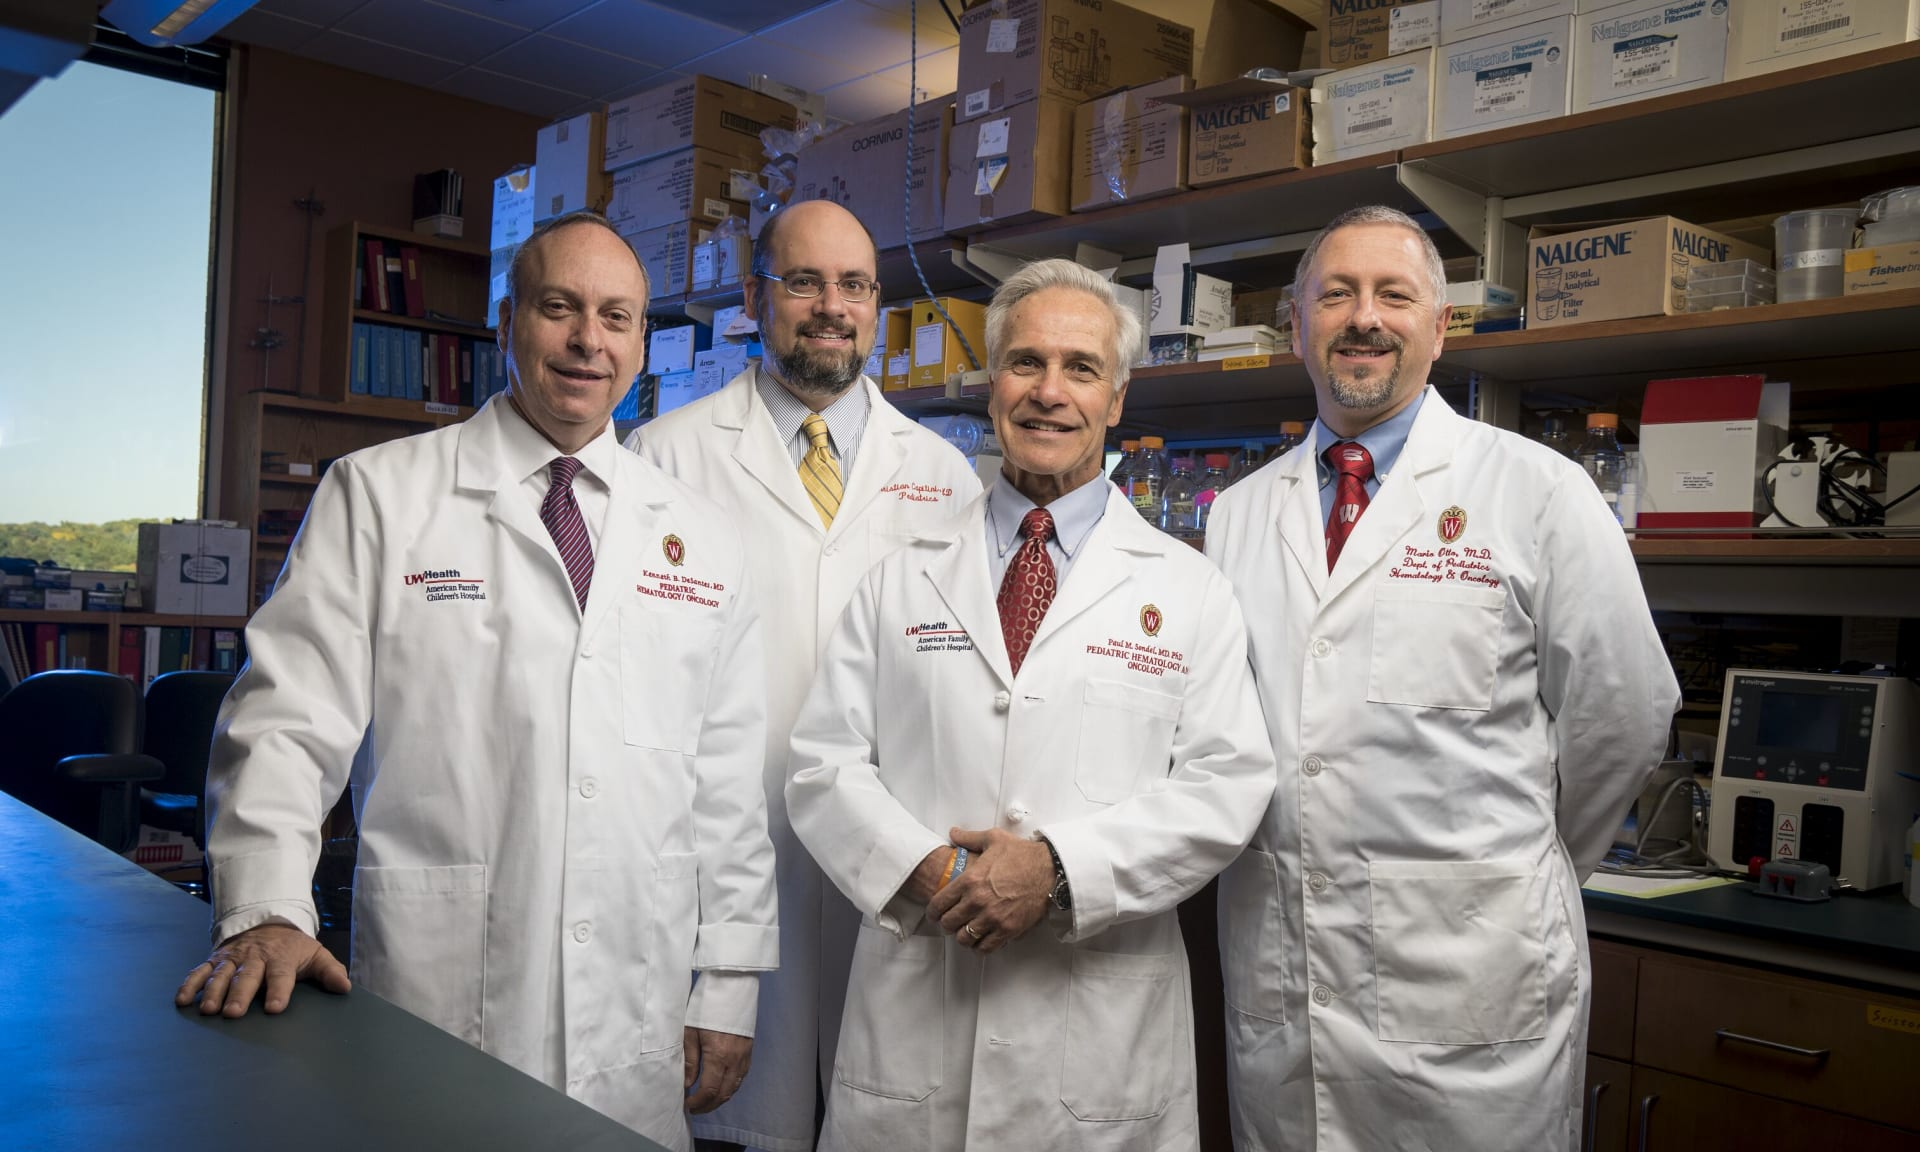 Four physicians in white coat